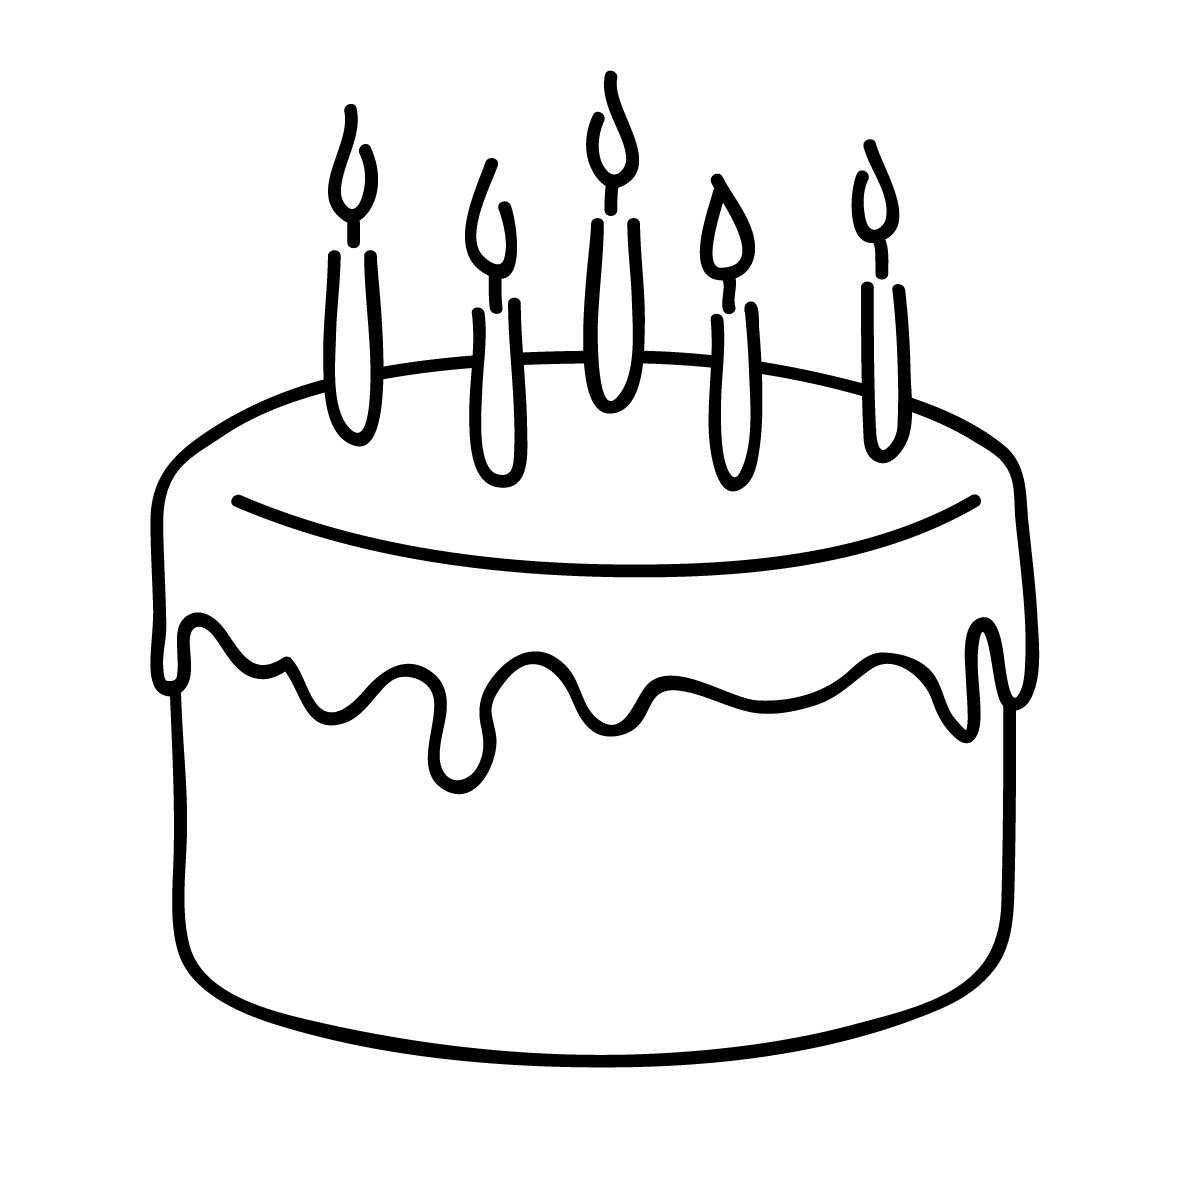 Outline Of Cake - ClipArt Best